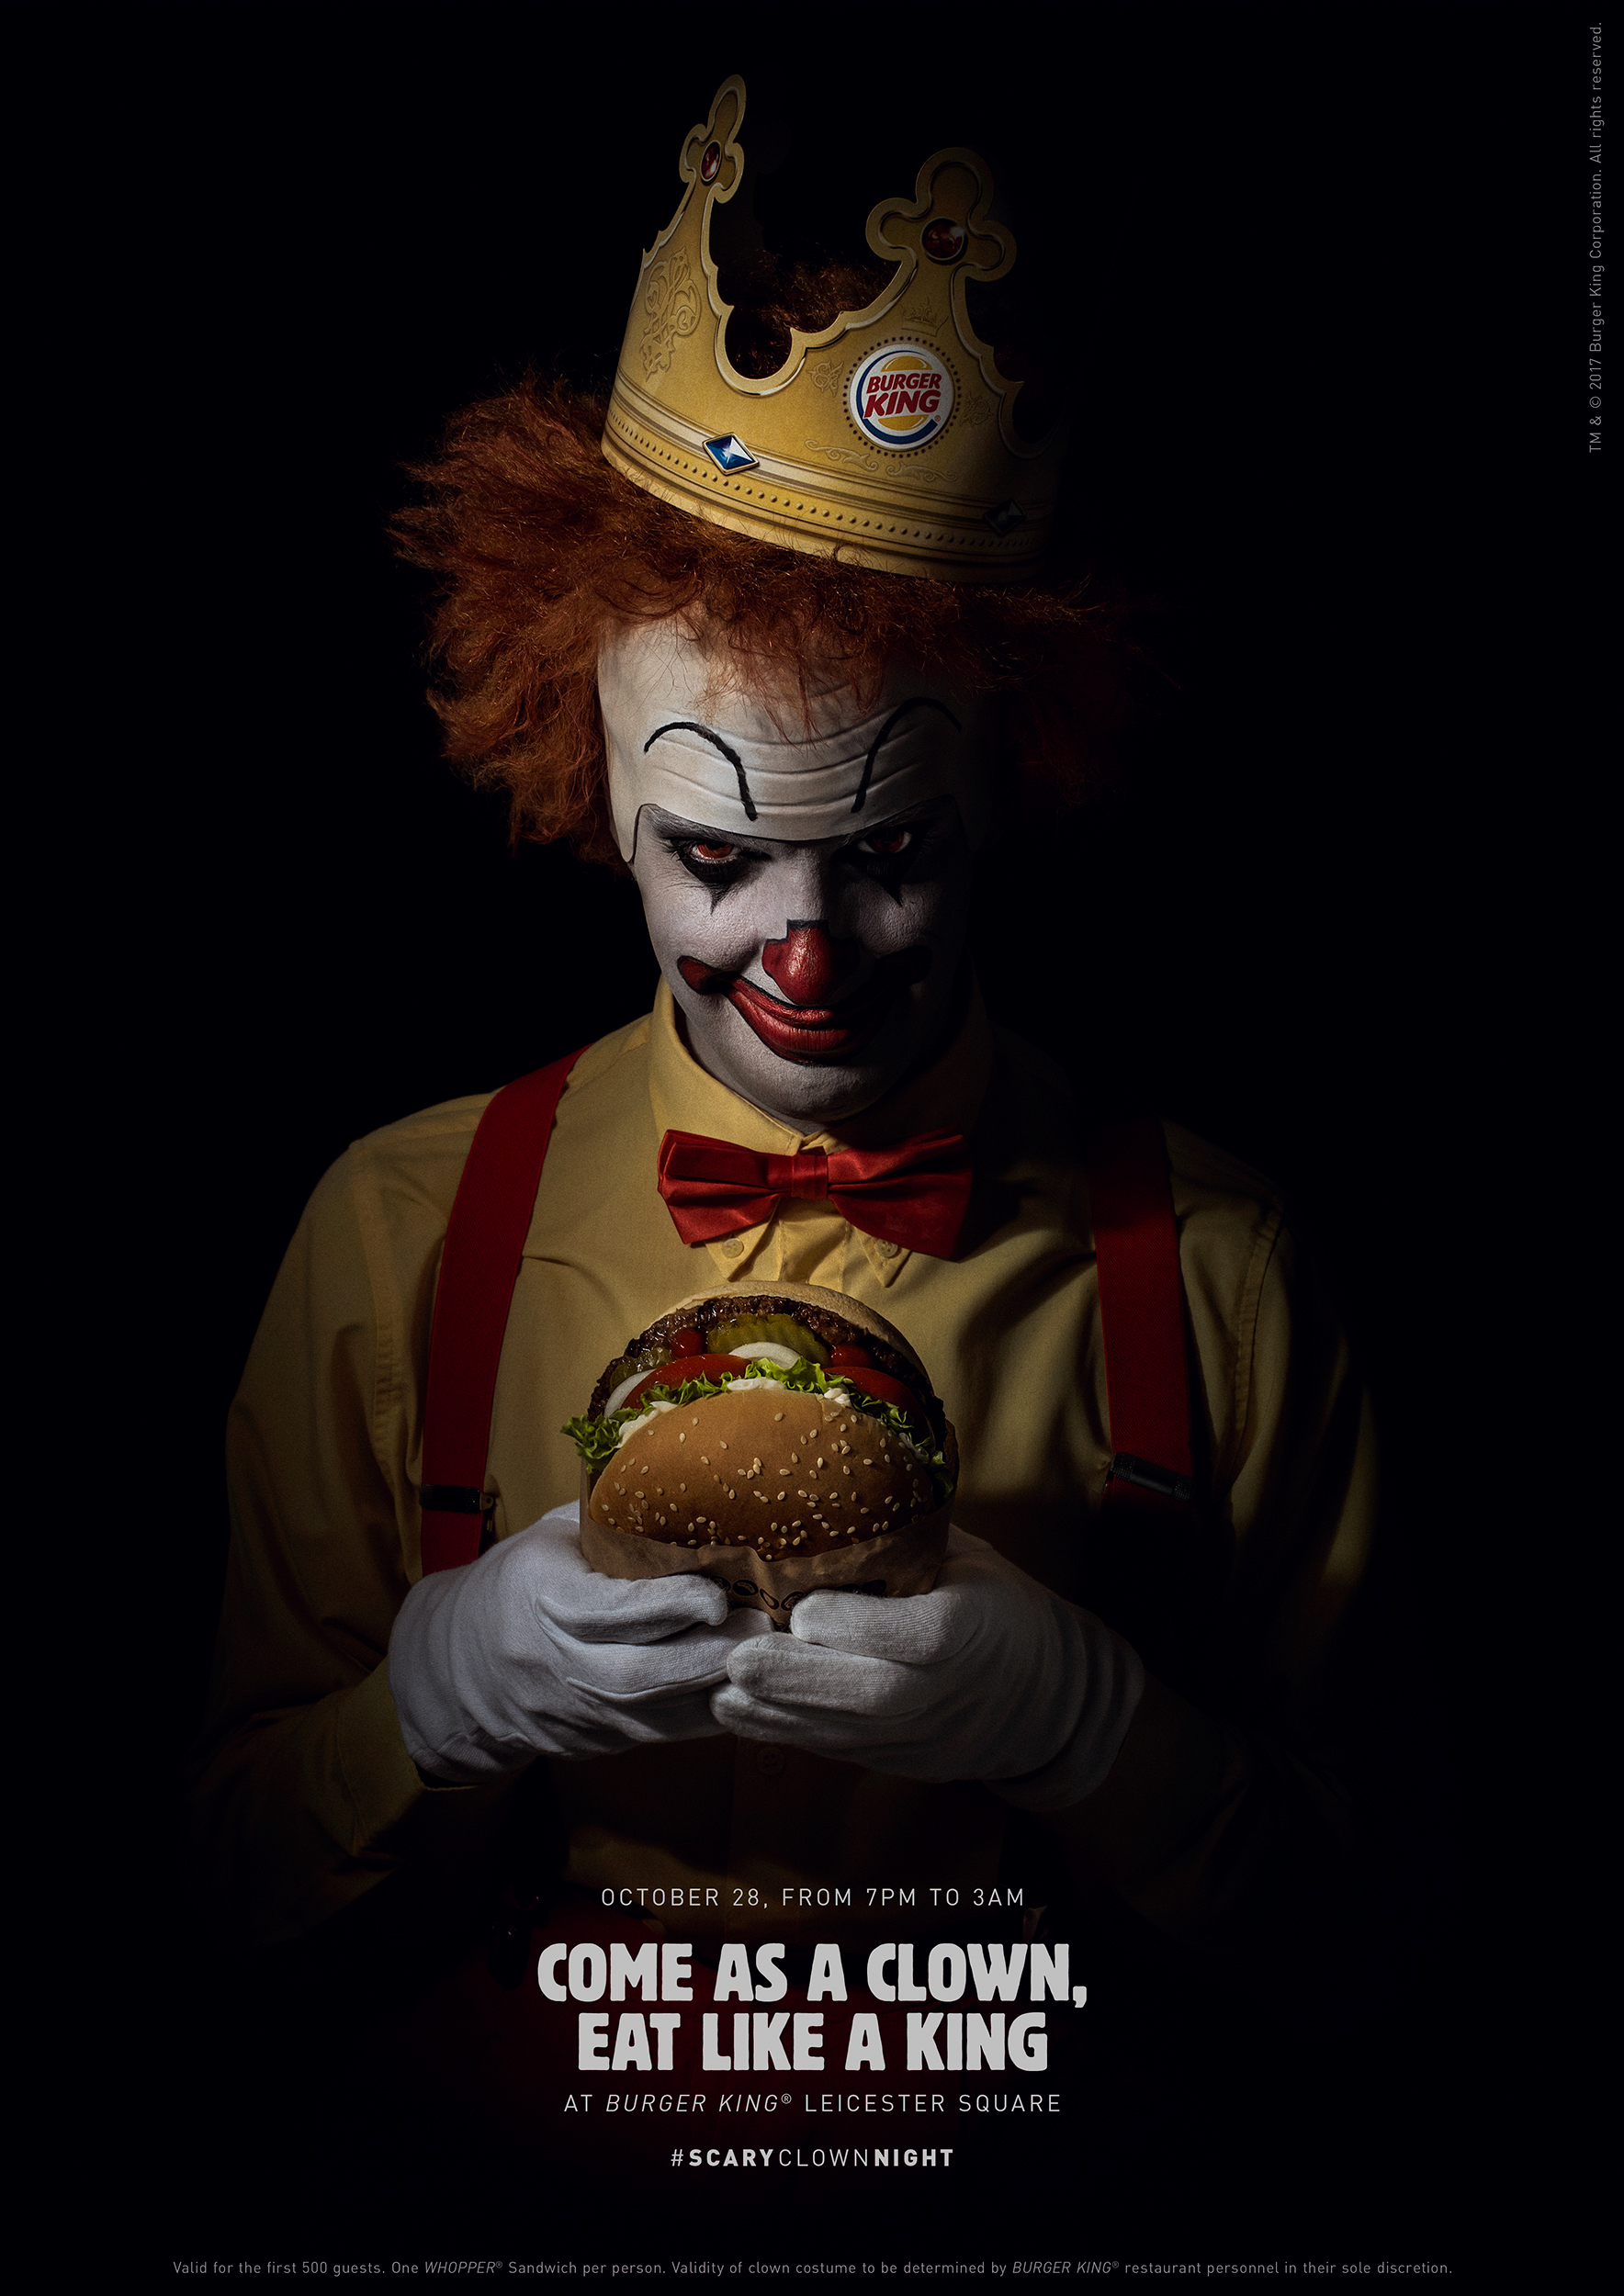 #ScaryClownNight X Burger King Digital Campaign